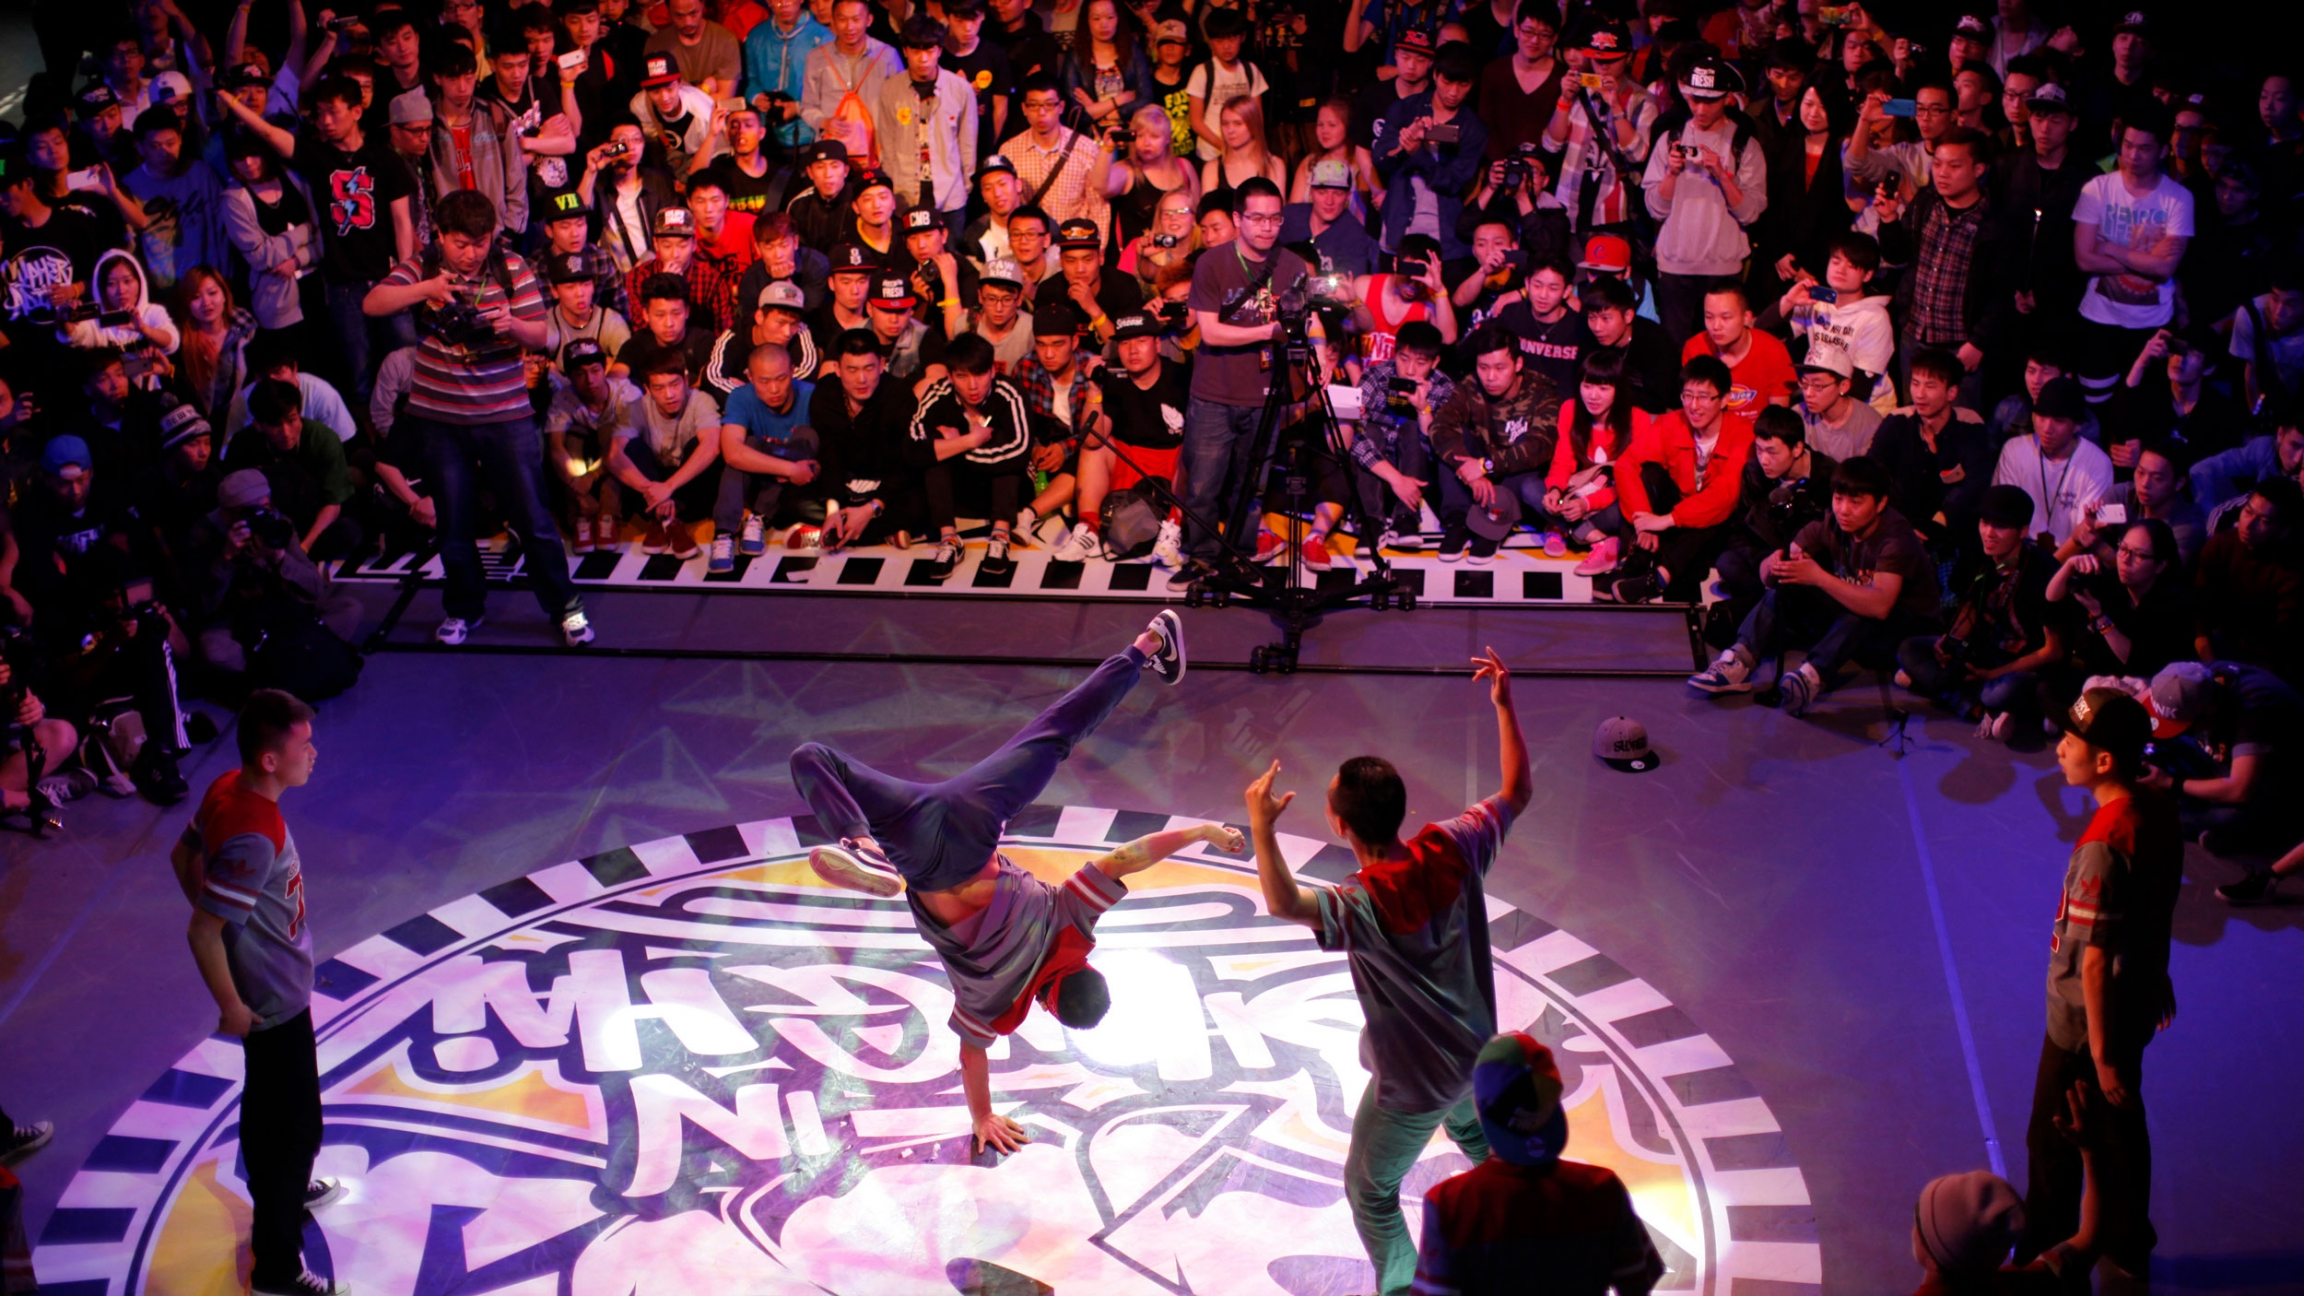 Several breakdancers perform on stage with a large crowd watching.